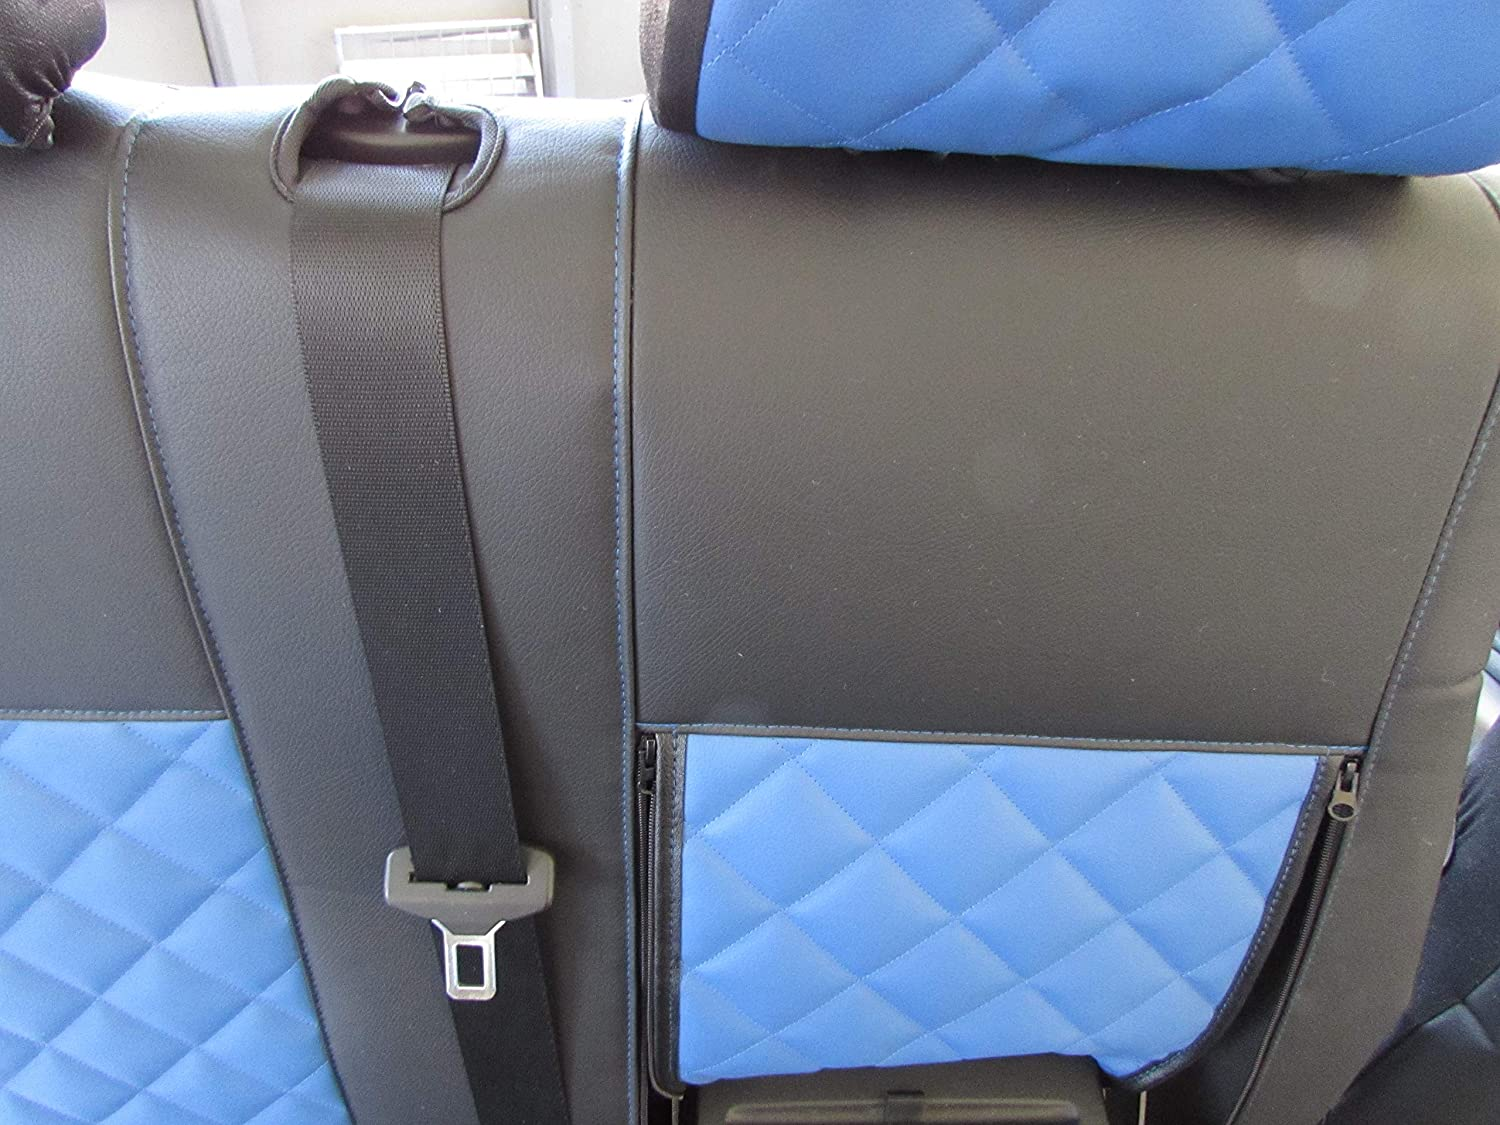 1 single 1 double VW CRAFTER 2006-2018 RHD BLACK-BLUE ECO LEATHER Seat Covers 2+1 Texmar Designed to fit MERCEDES SPRINTER 2006-2018